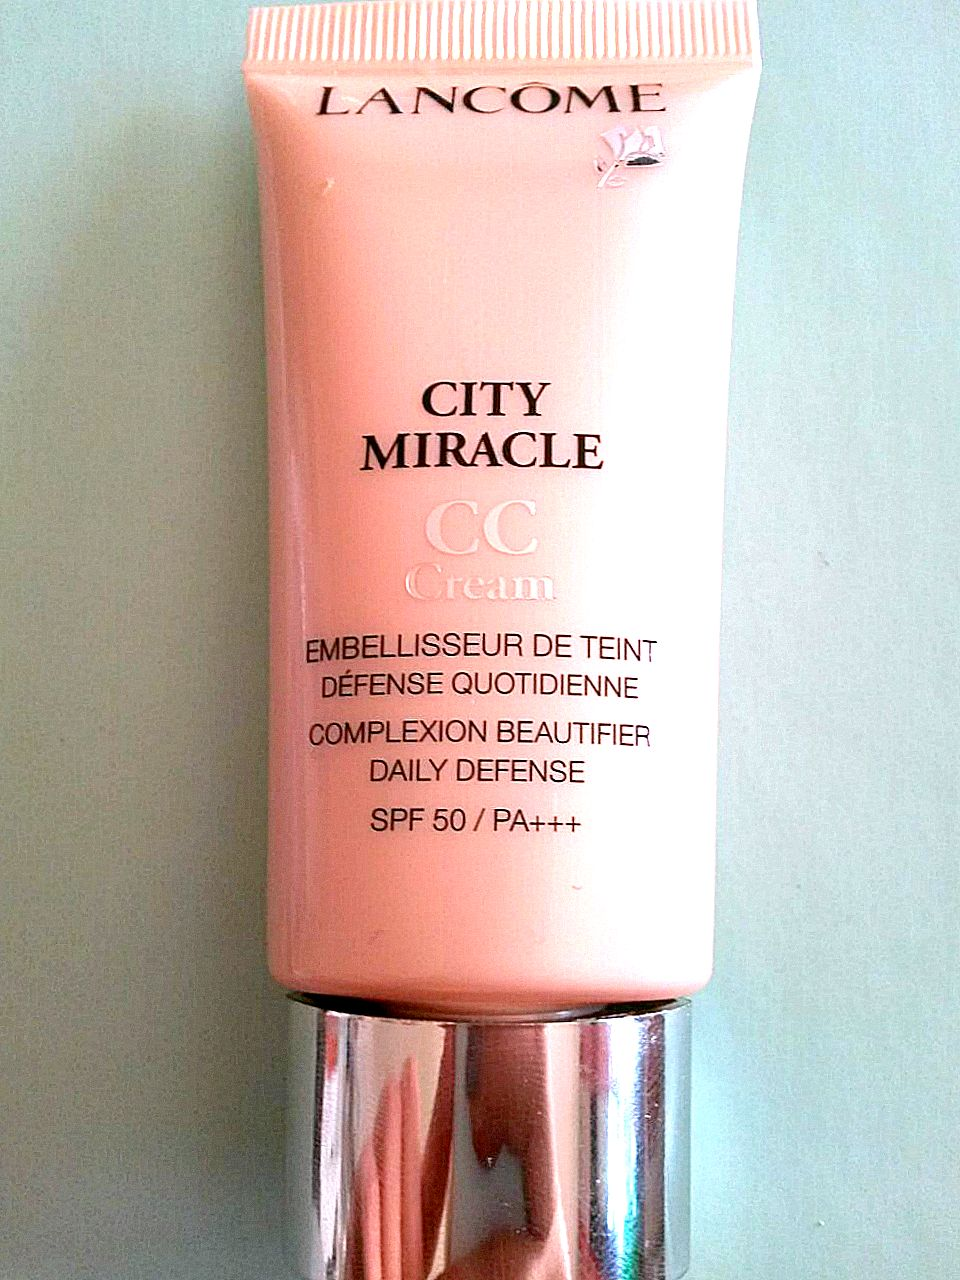 LANCOME Teint City Miracle CC Creme